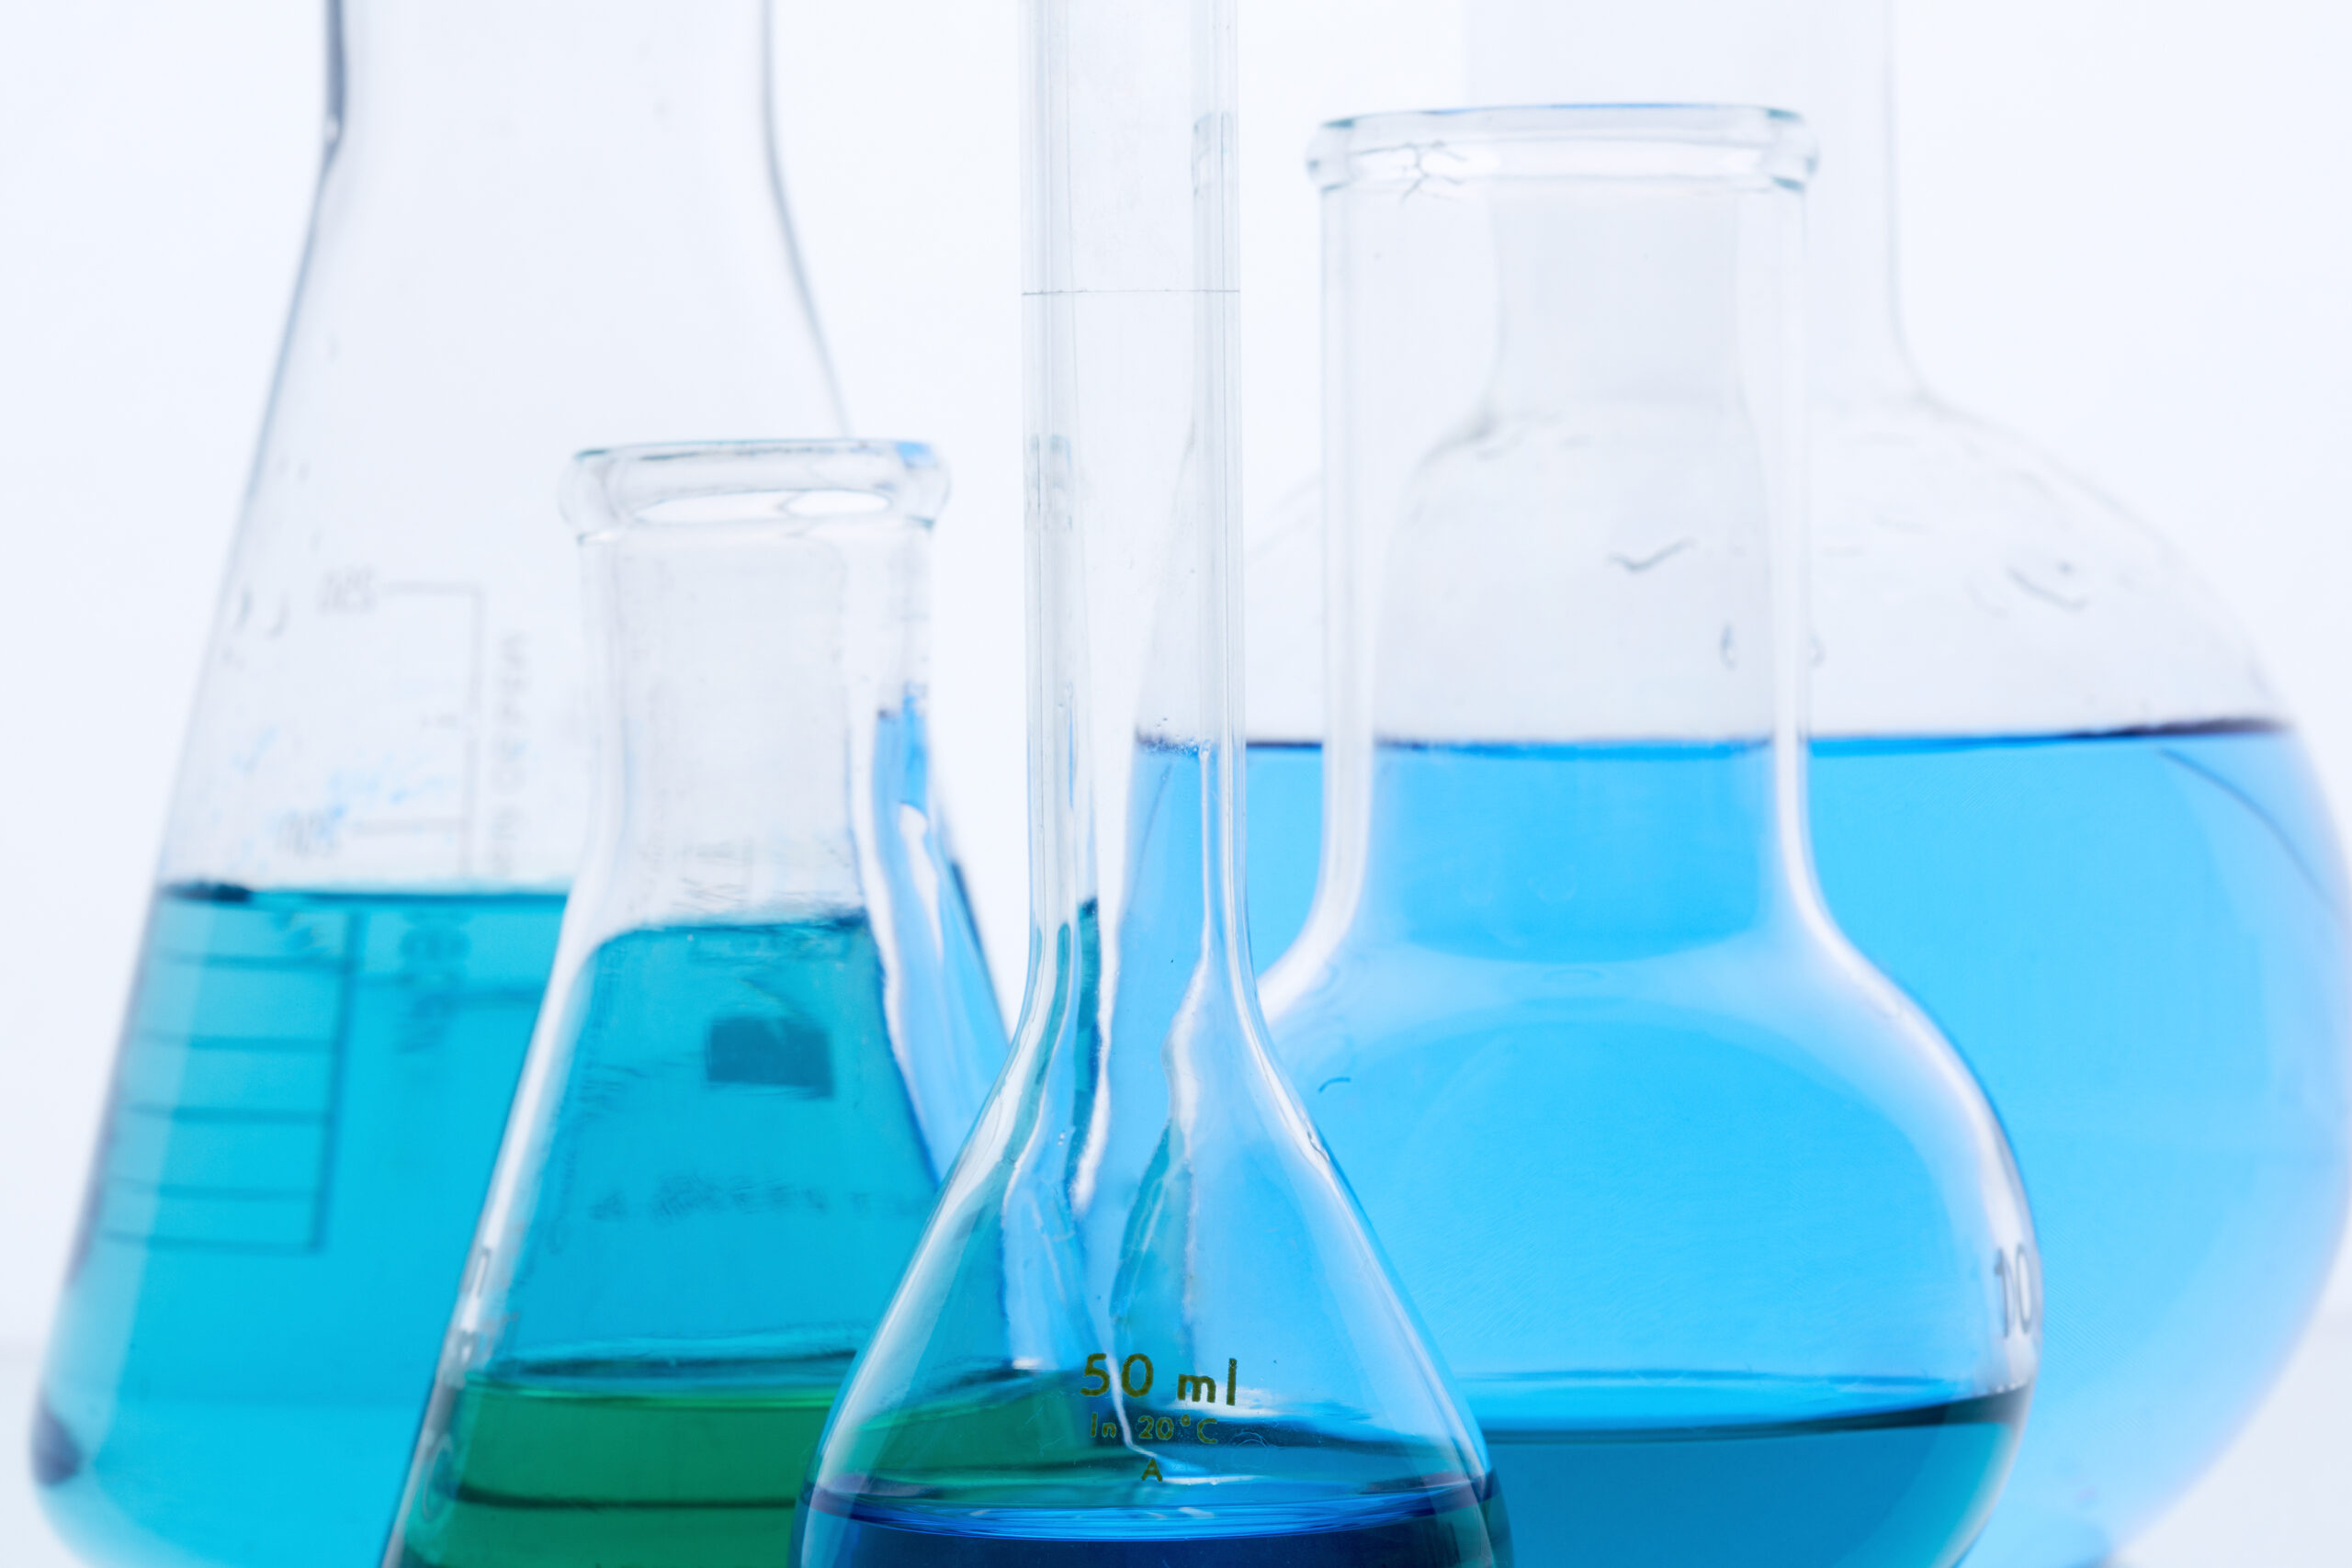 beakers filled with blue liquid